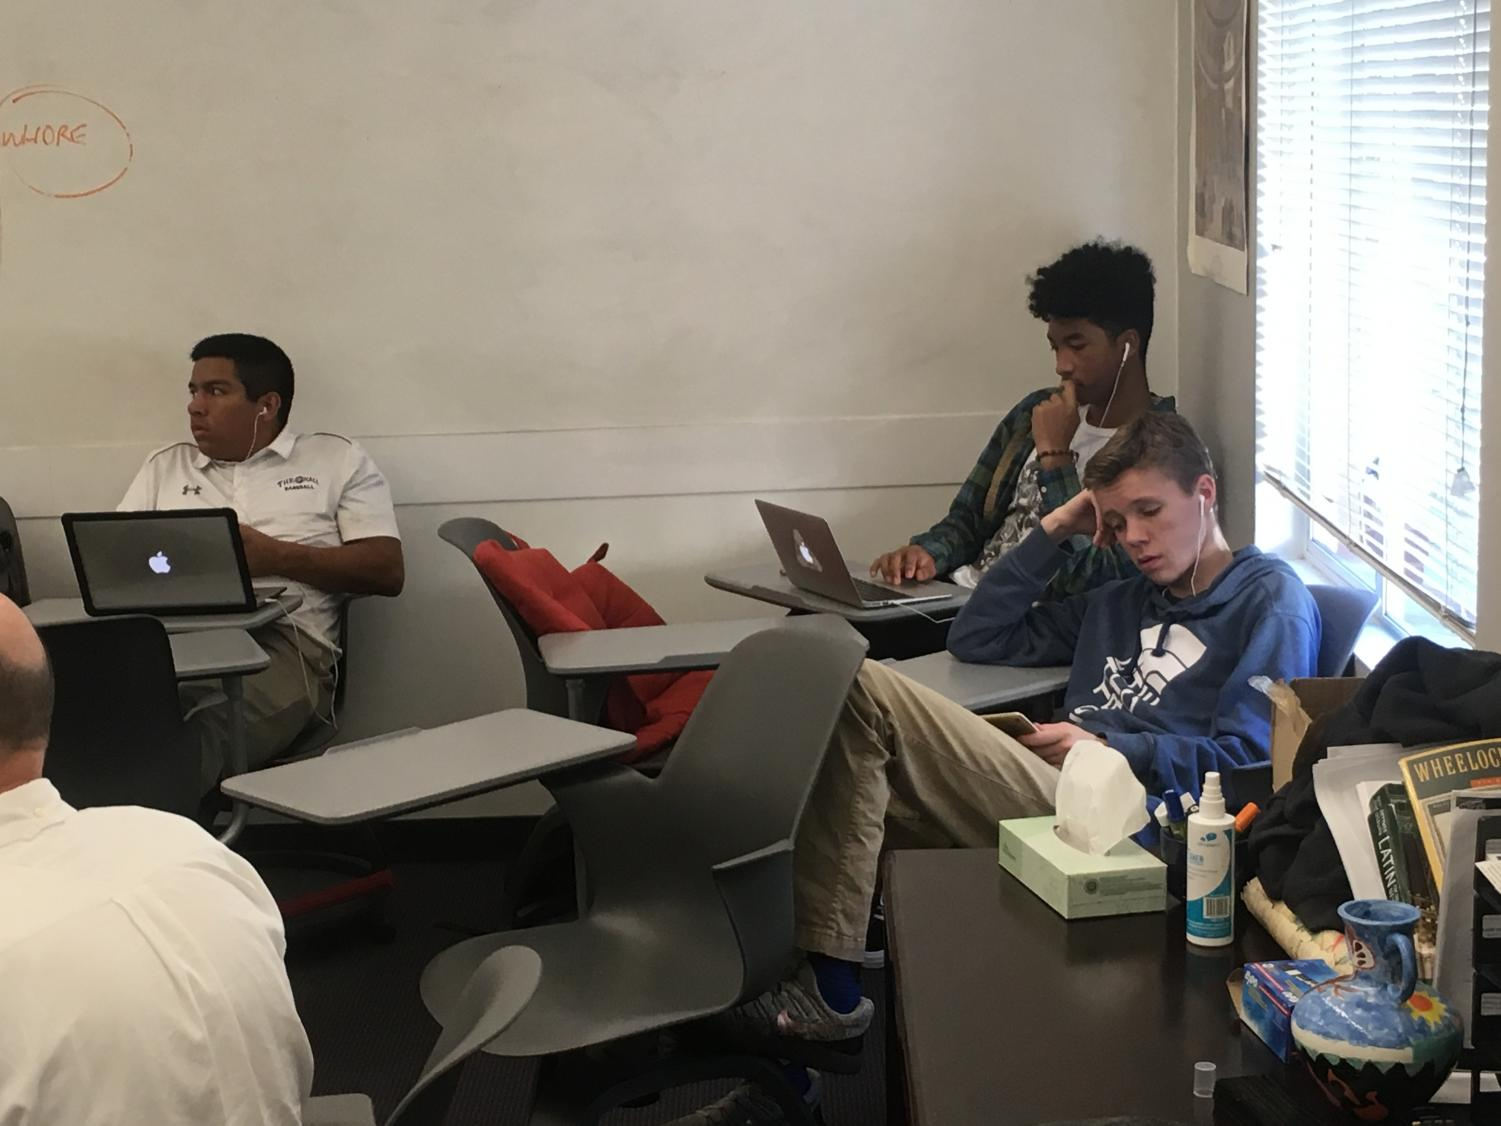 Seniors relax during free time in class. With college applications completed, seniors have more free time.